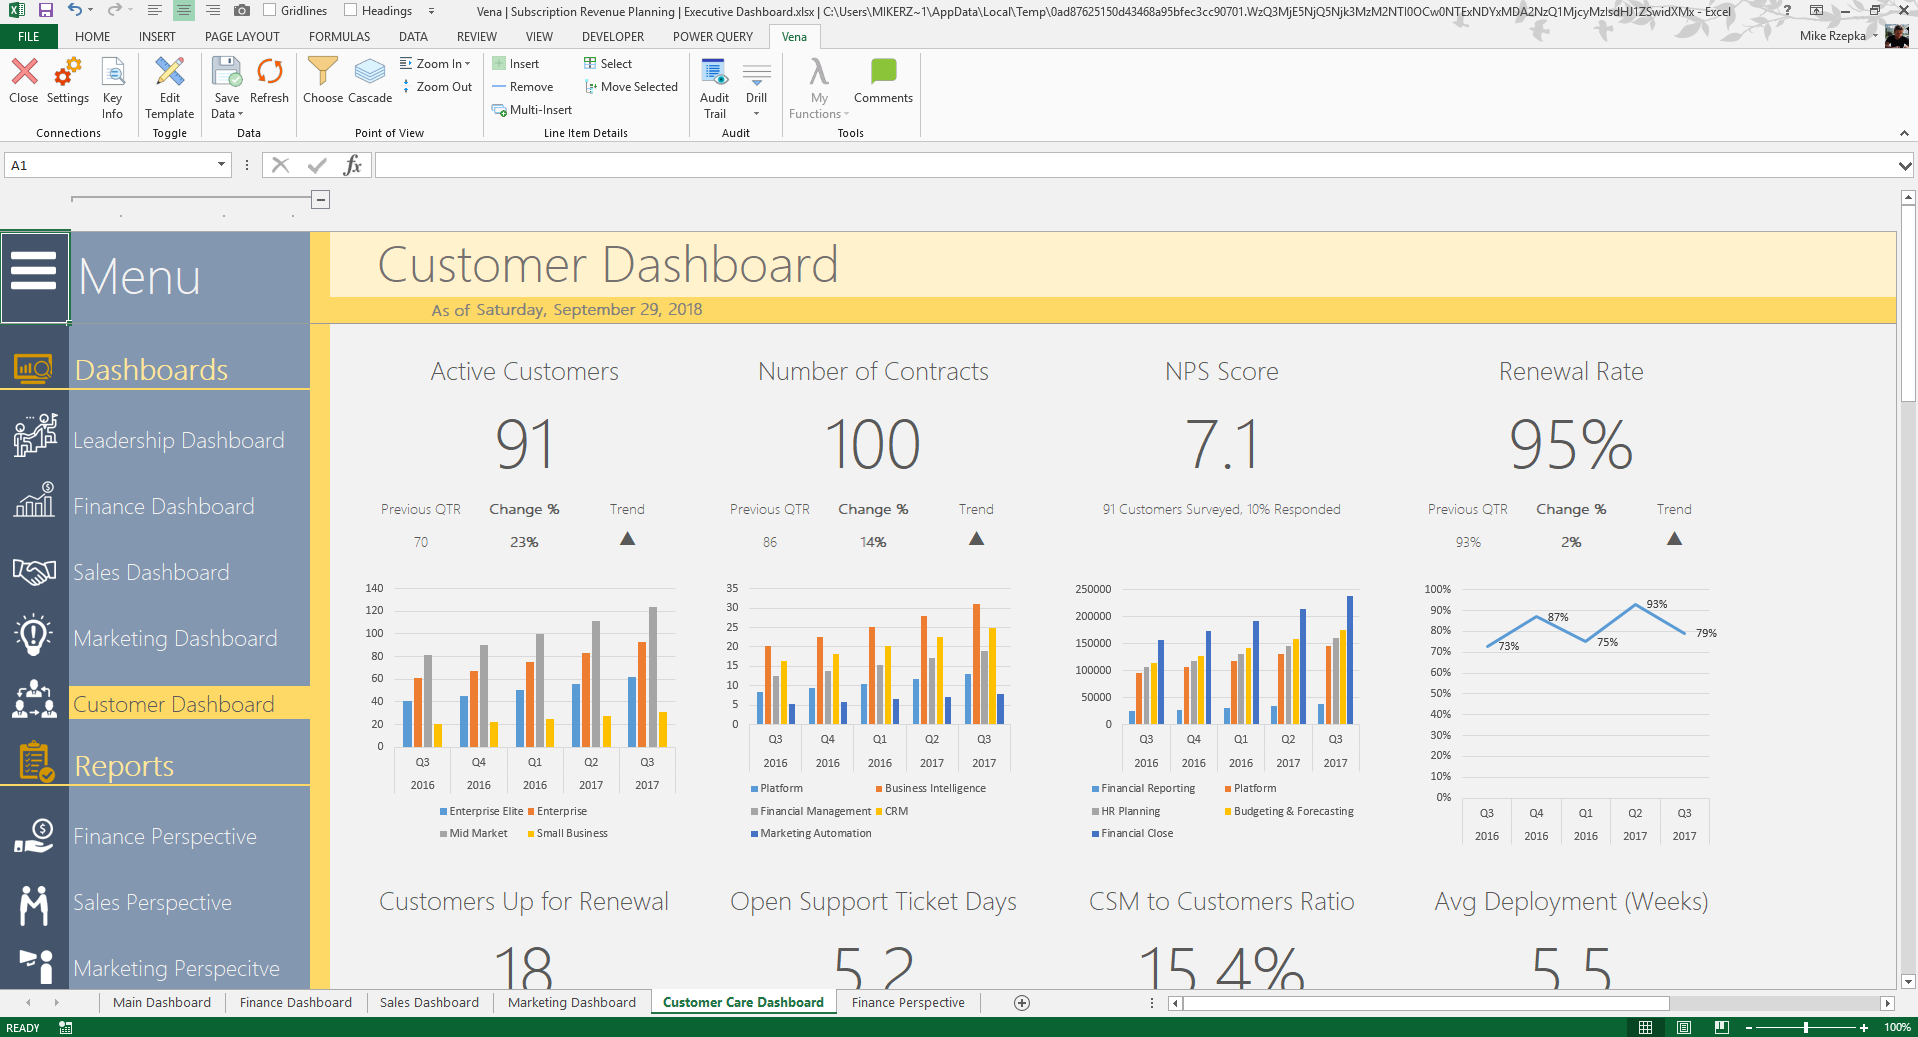 FP&A Best Practices: Insightful Dashboard Reporting